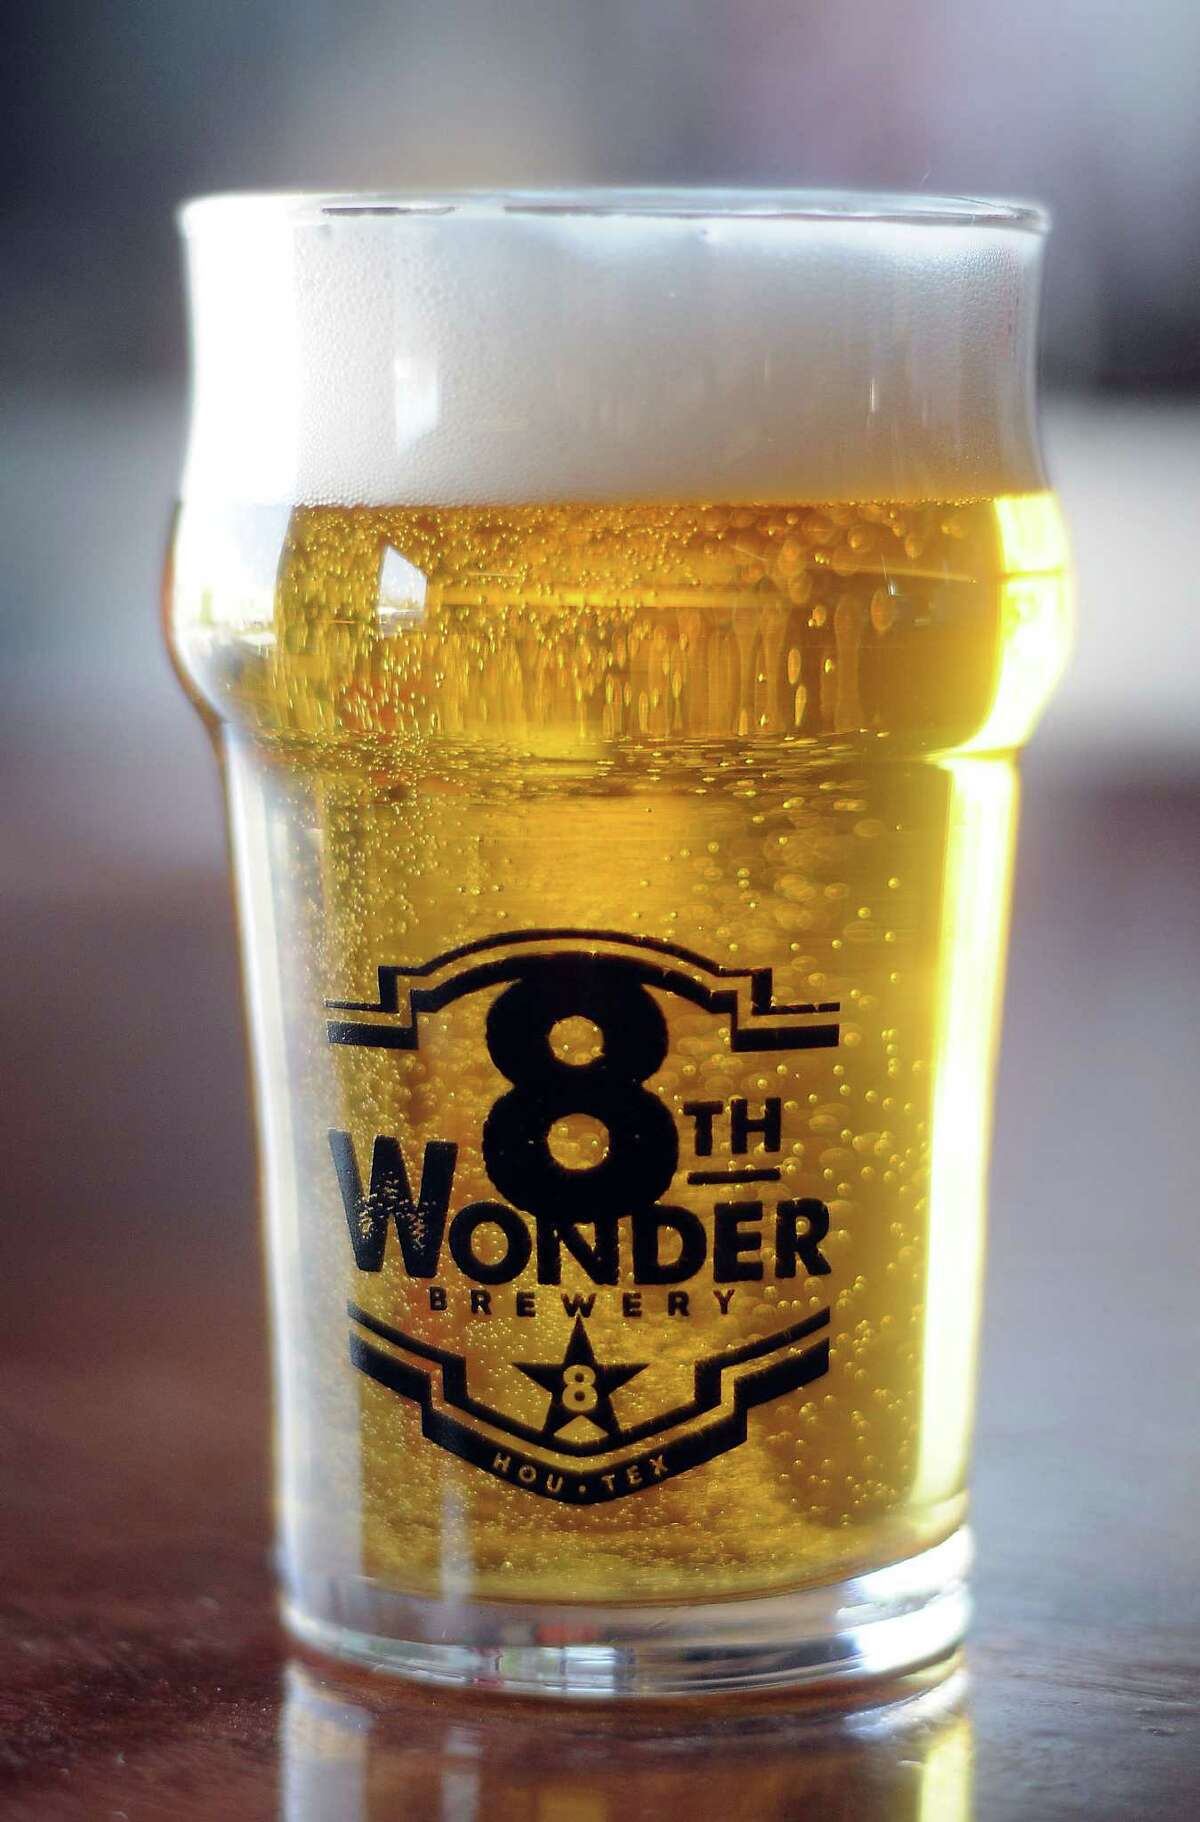 Fresh product at the 8th Wonder Brewery on Dallas St. Thursday March 6, 2014.(Dave Rossman photo)